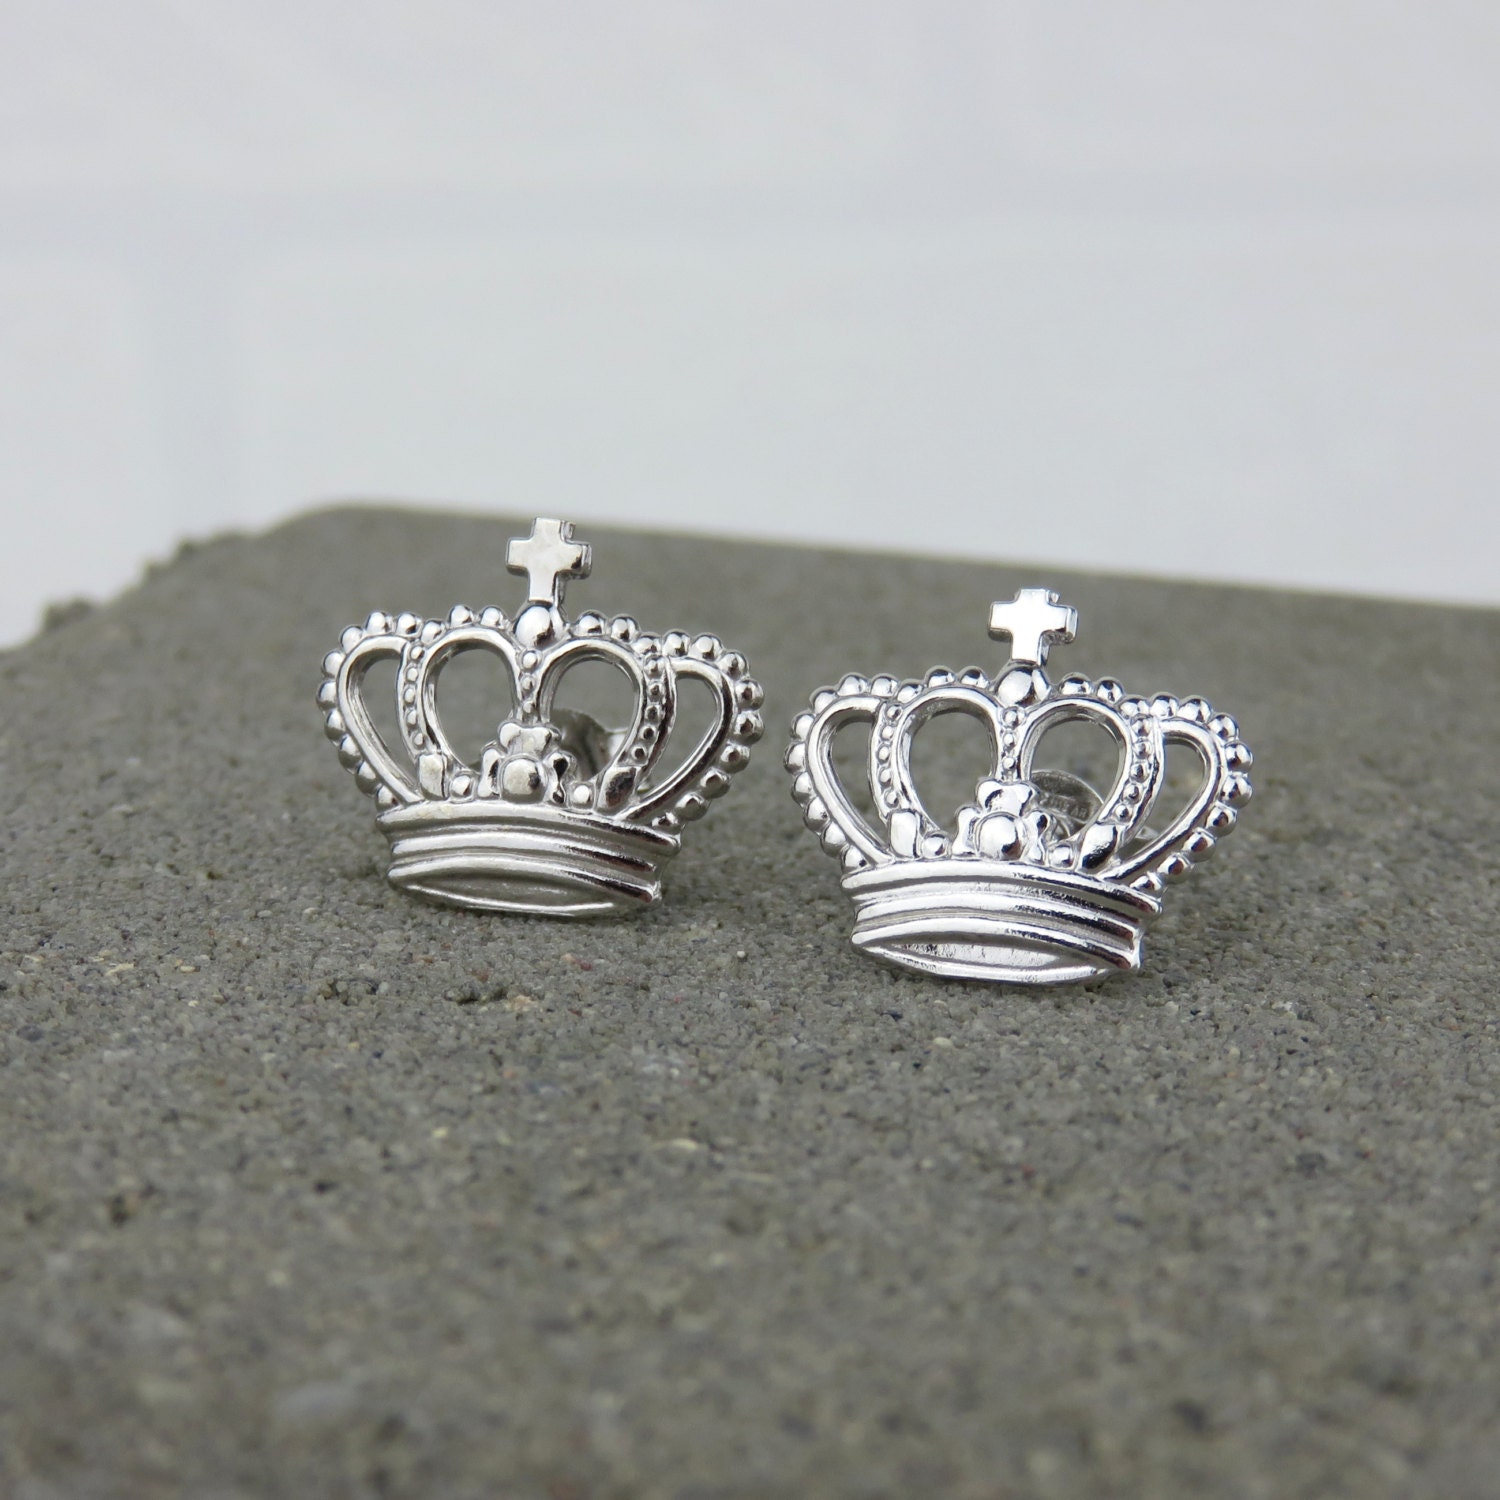 silver crown stud earrings available in yellow gold